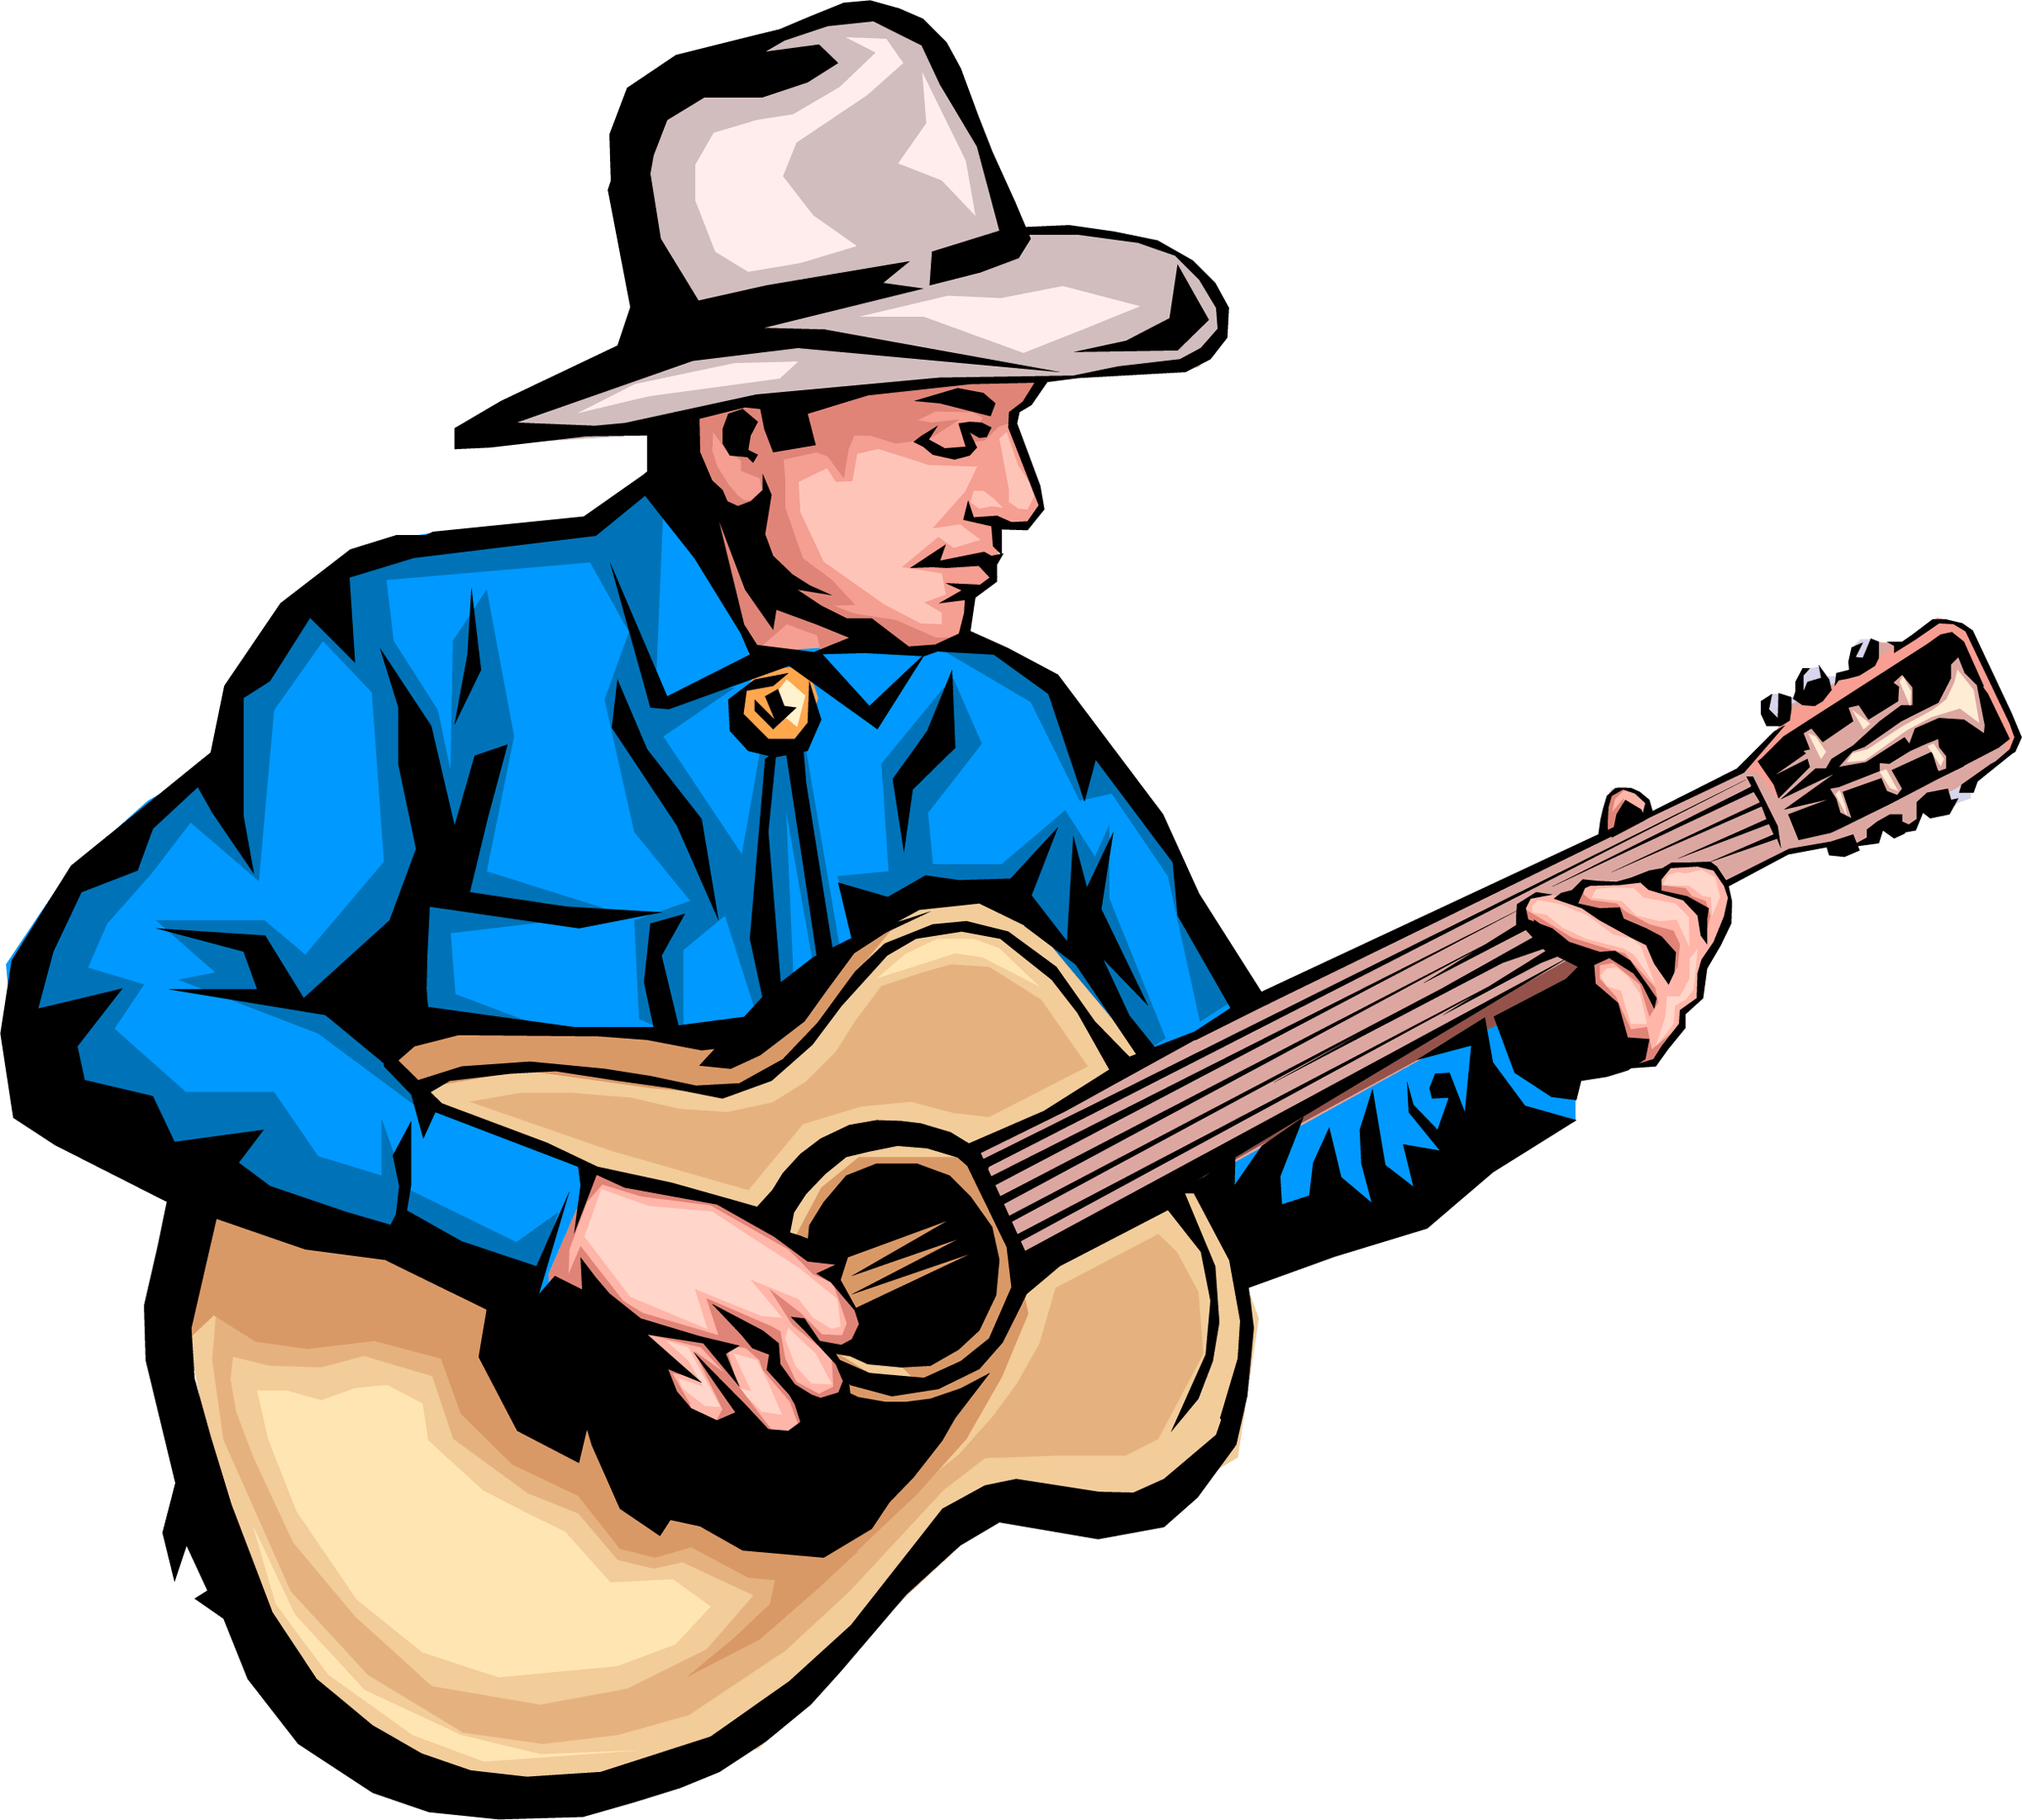 Free Country Cartoon Cliparts, Download Free Clip Art, Free.